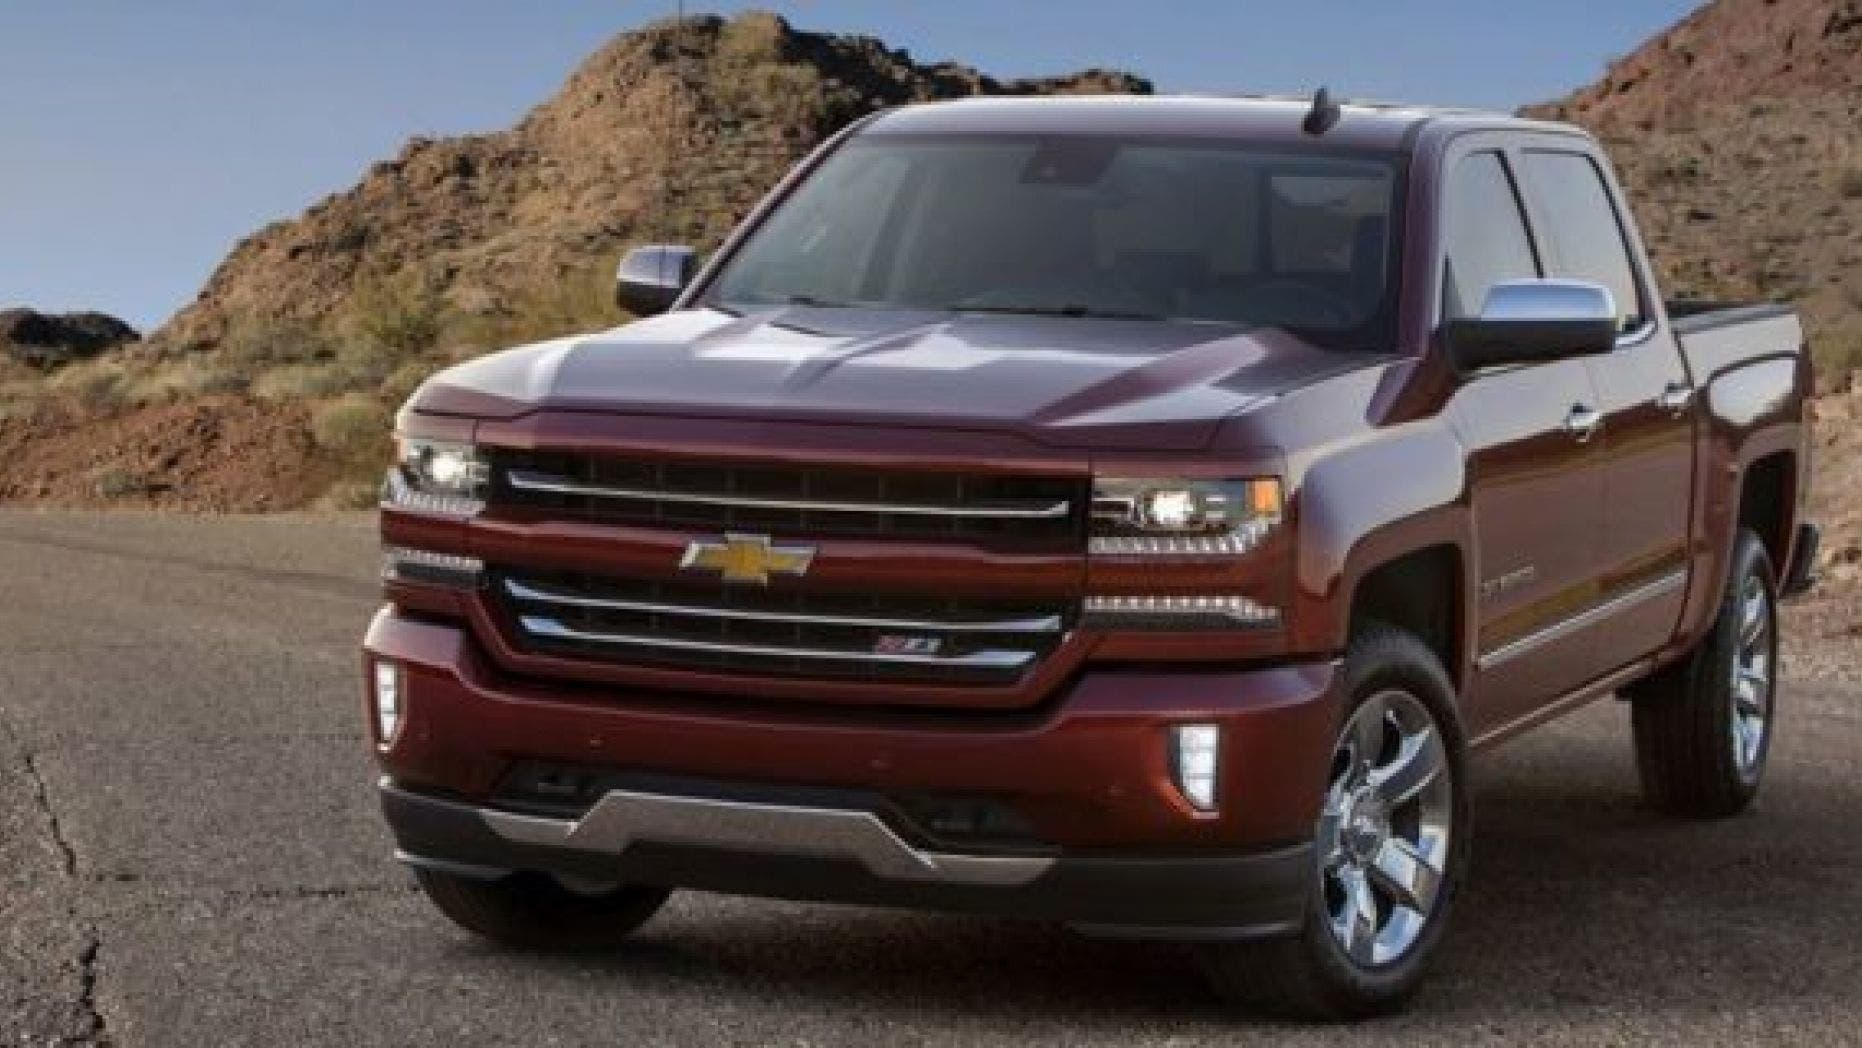 The 2016Chevrolet Silverado is one of the vehicles being investigated.